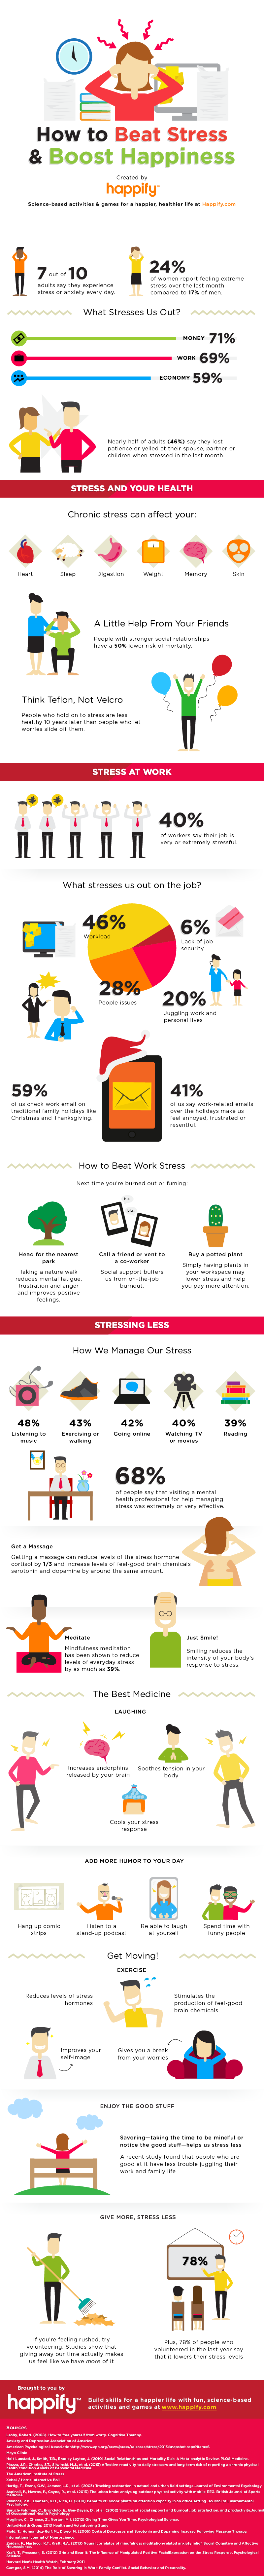 The Teflon Method: Strategies to Reduce the Unhealthy Impact of Stress - Infographic